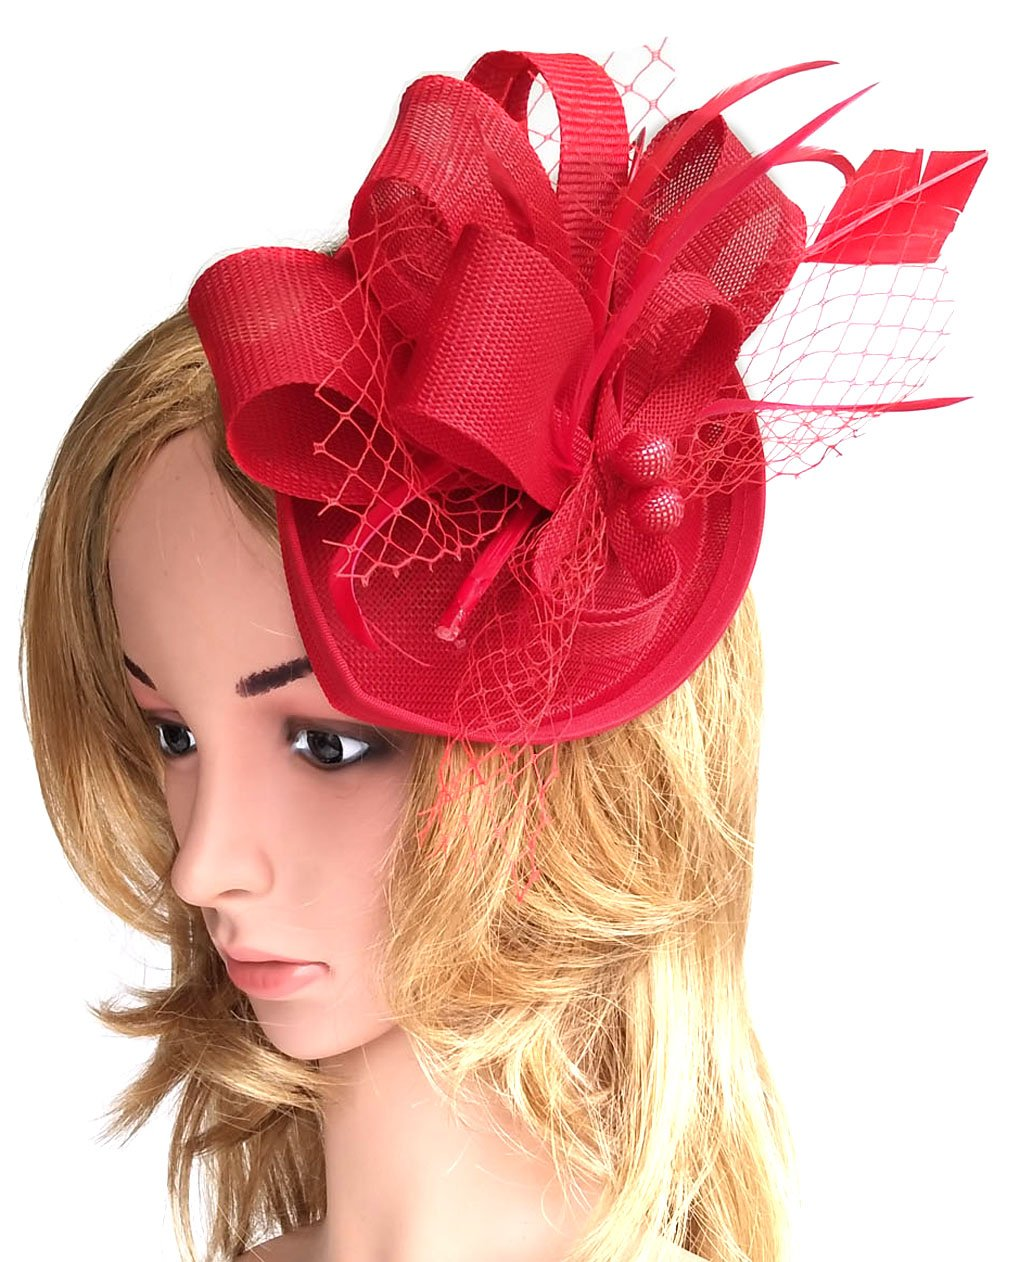 Biruil Fascinators Sinamay Feather Womens Pillbox Flower Derby Cocktail Tea Party Hat (Red) by Biruil (Image #2)